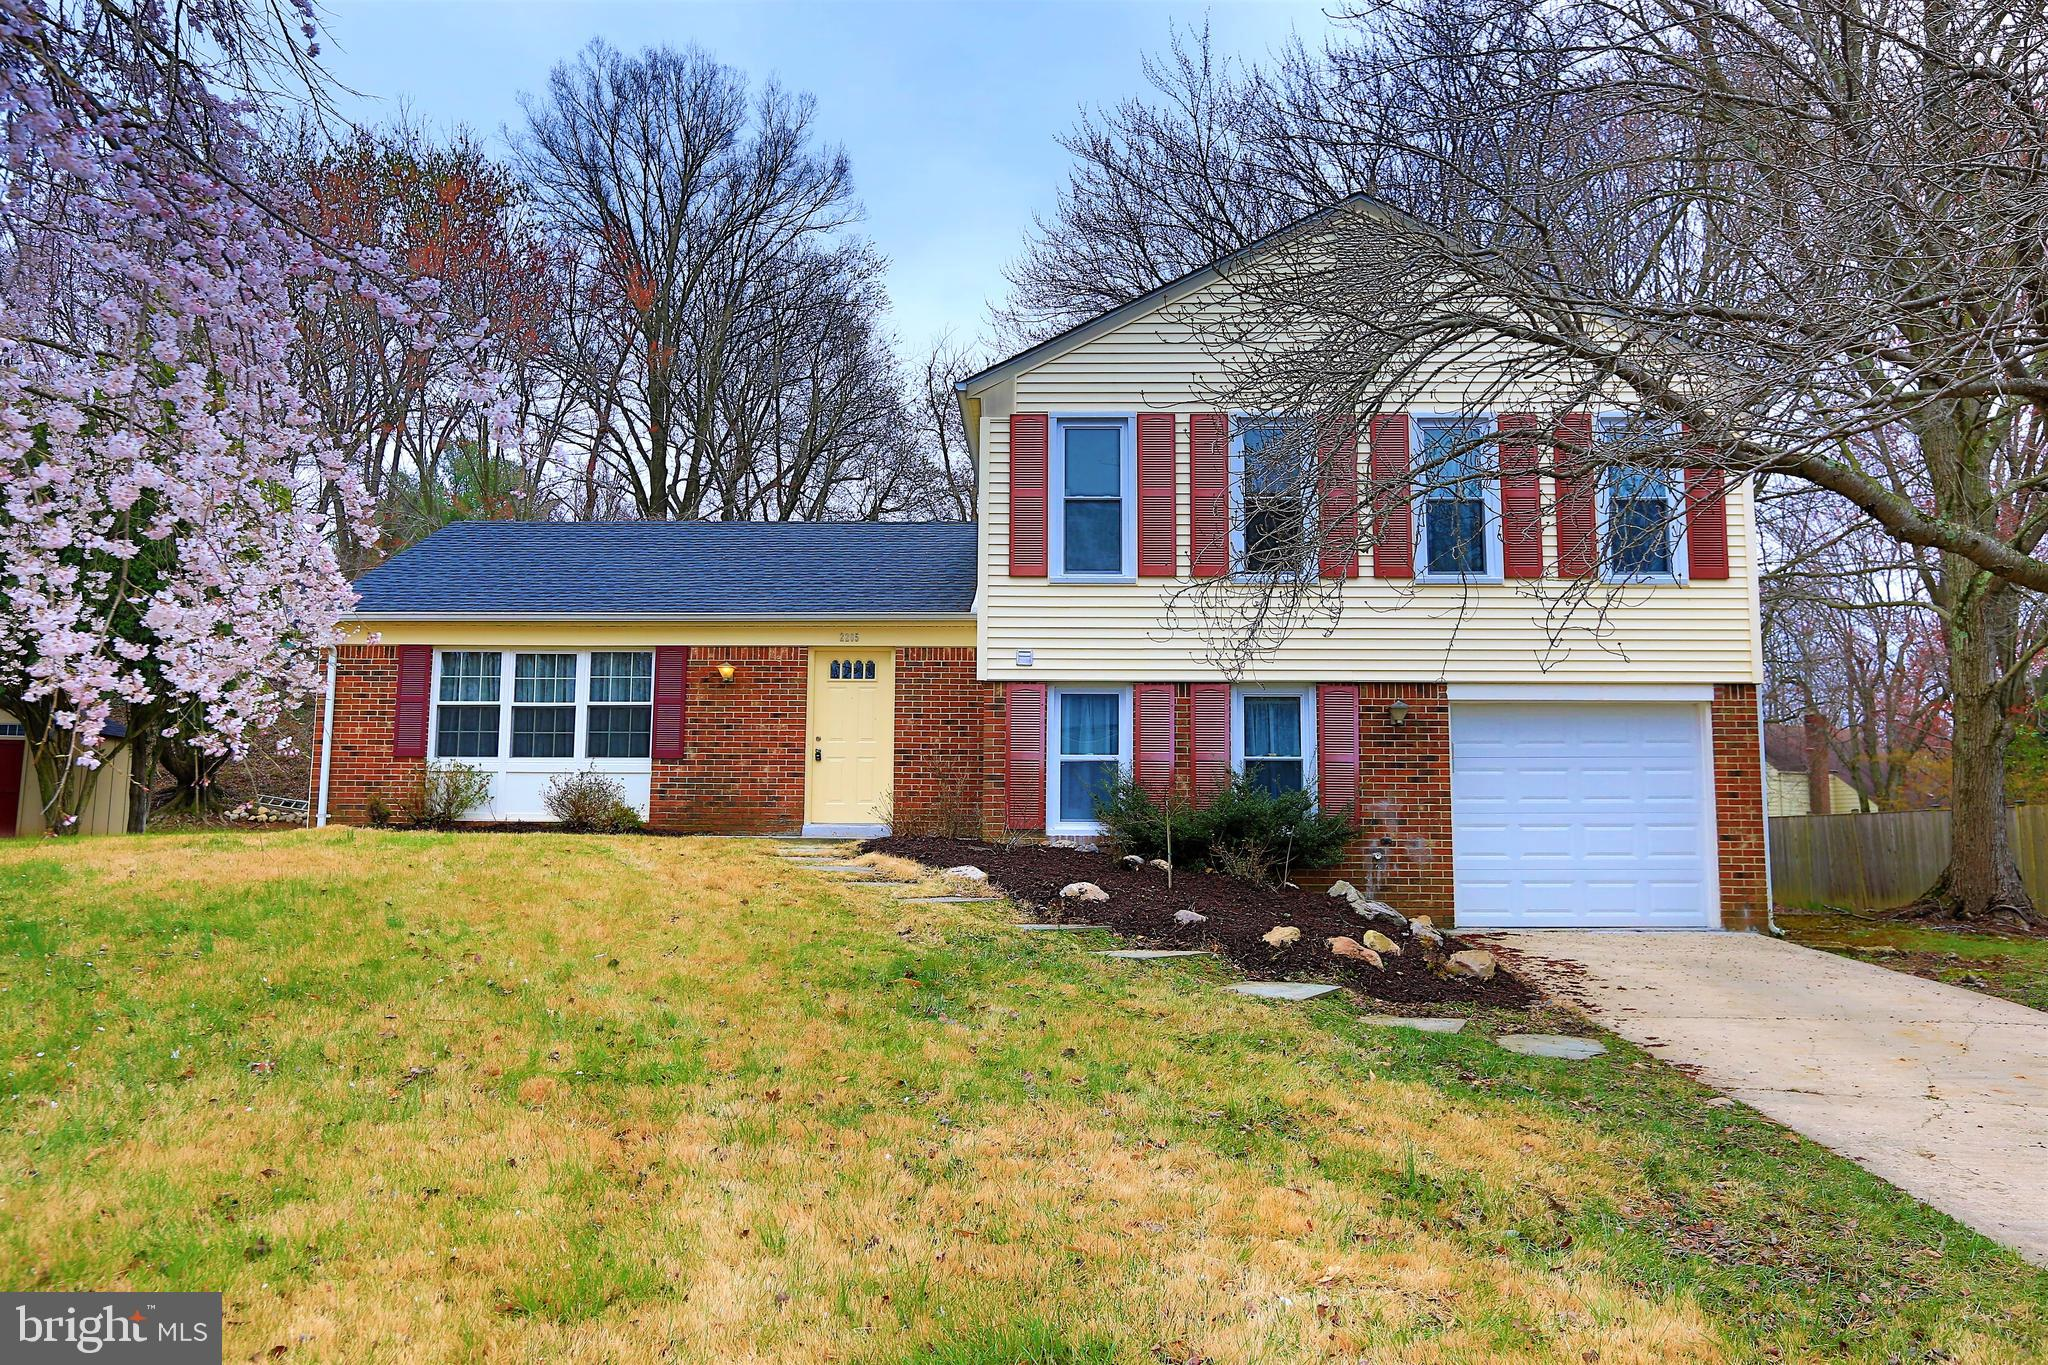 2205 COUNTRYSIDE DRIVE, SILVER SPRING, MD 20905